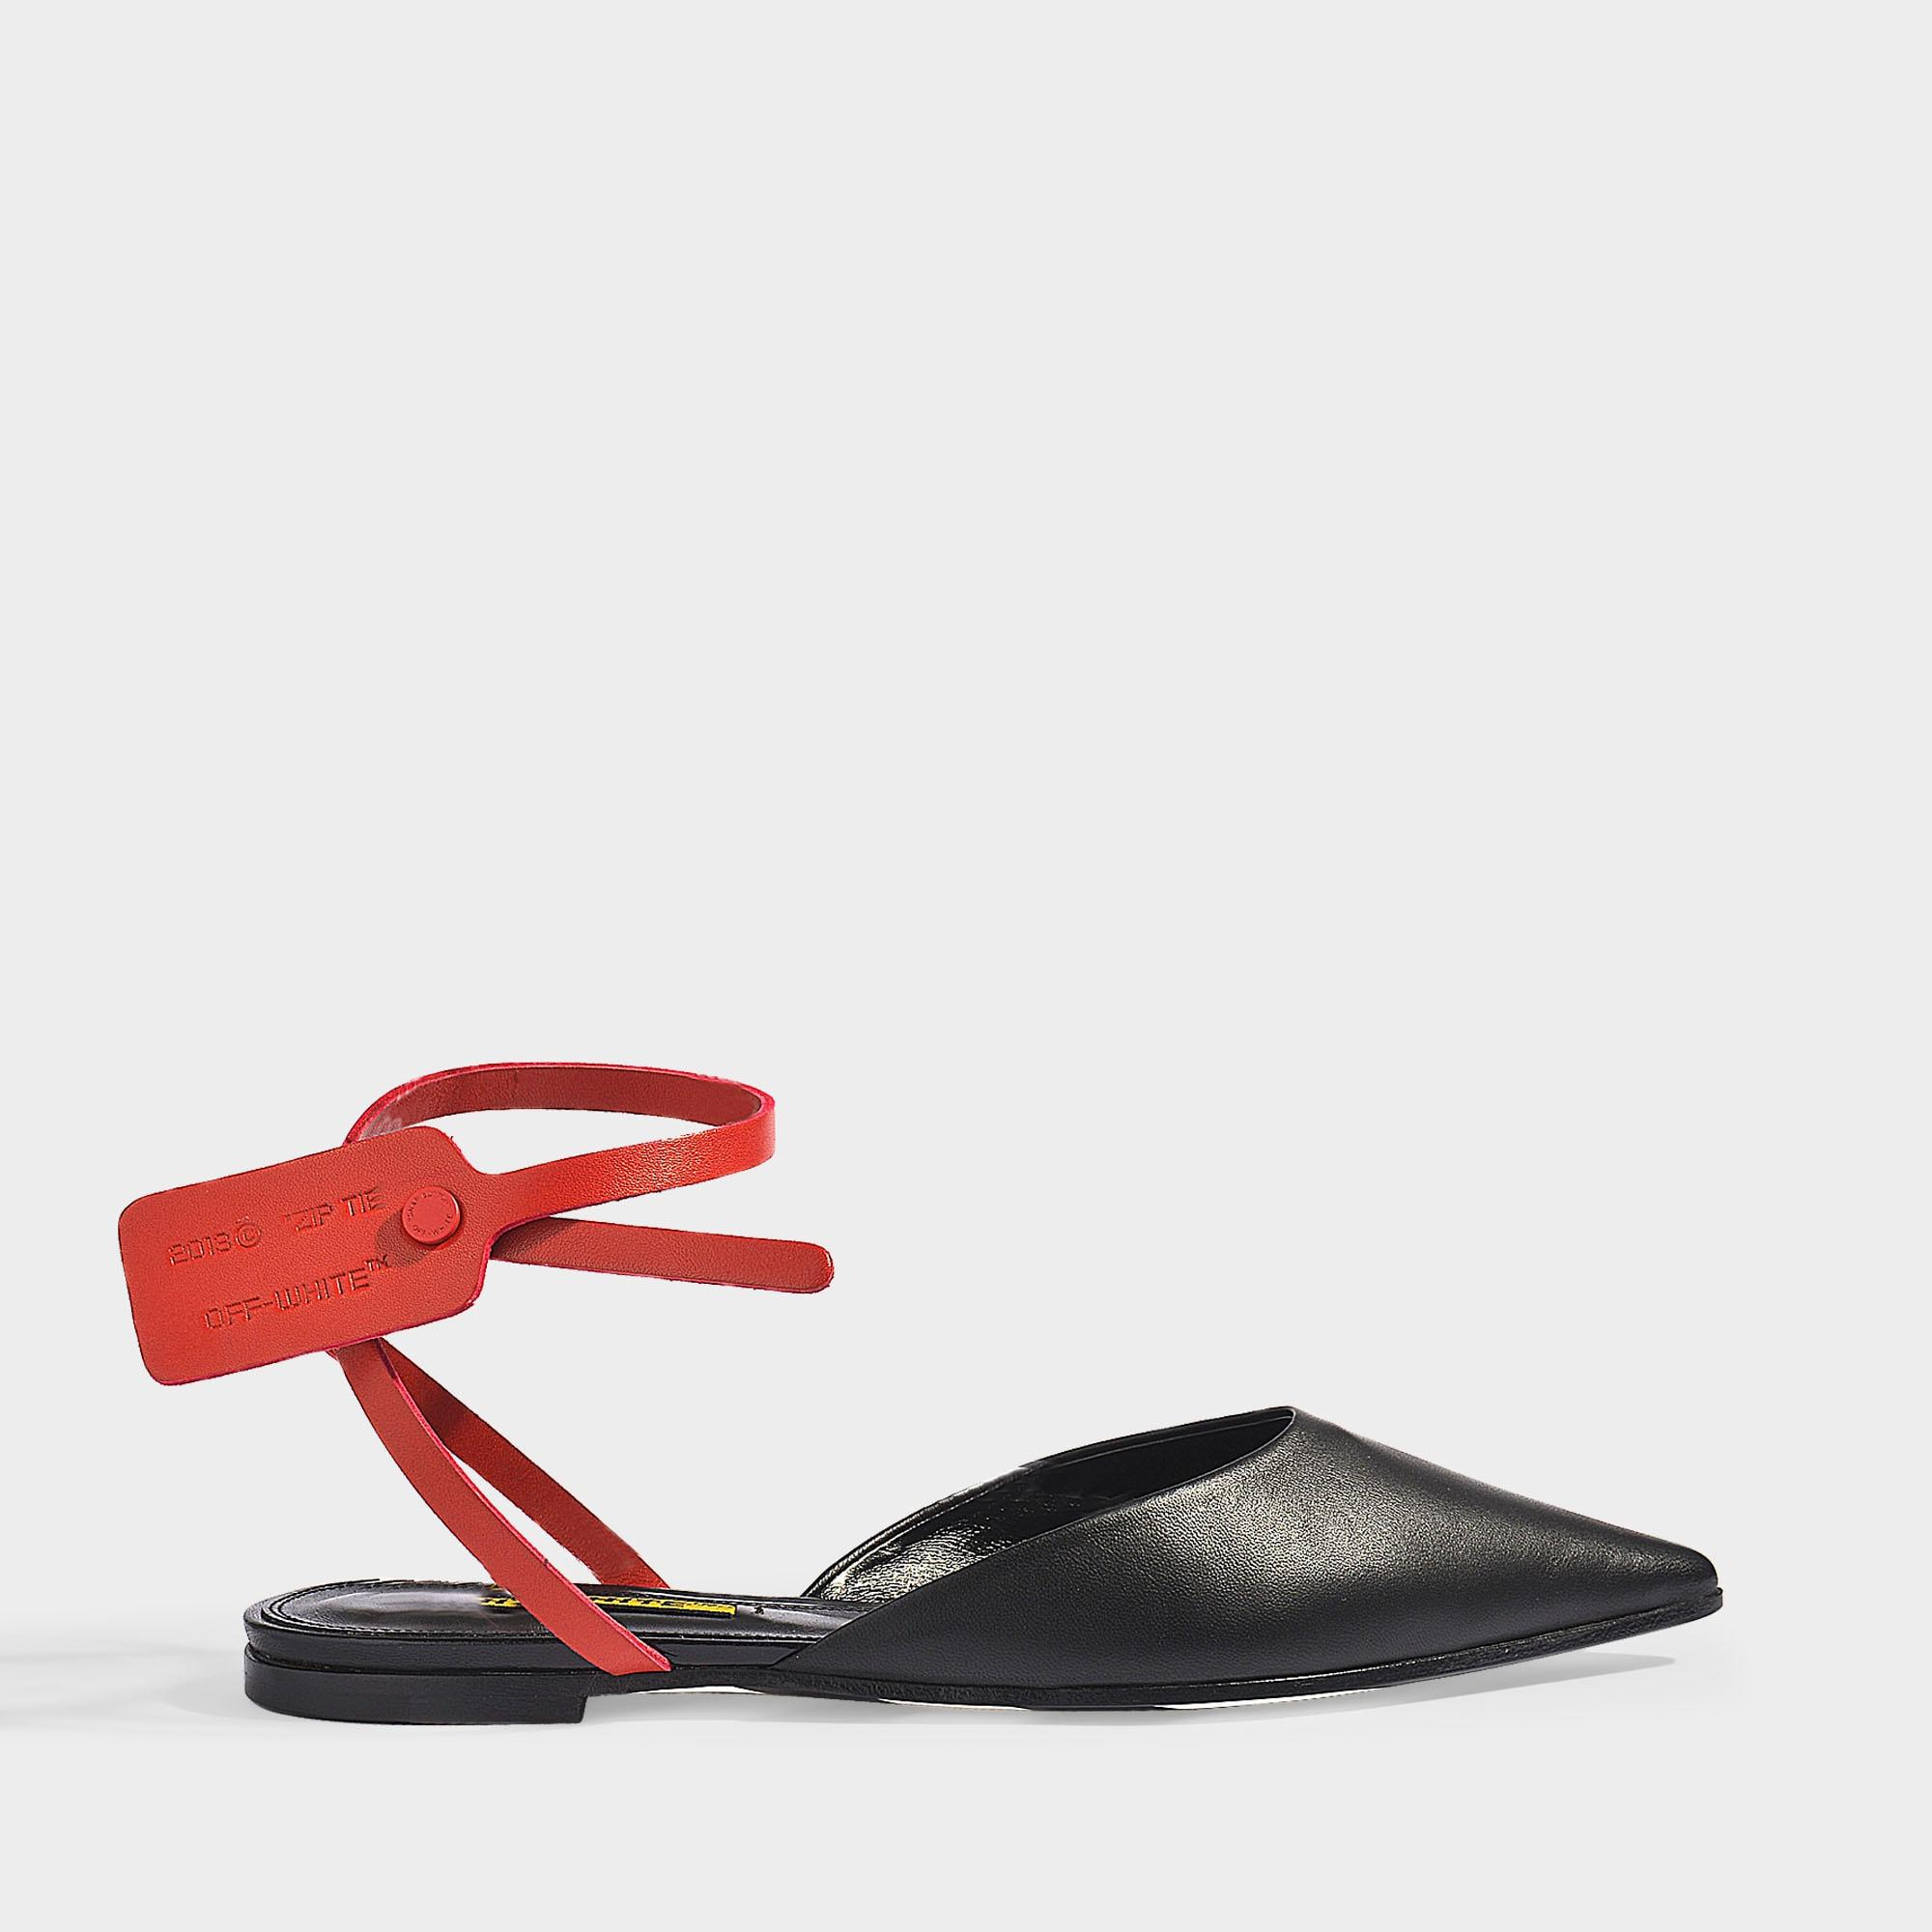 31109fef34a8 Off White C O Virgil Abloh Zip Tie Slippers In Black Leather Red